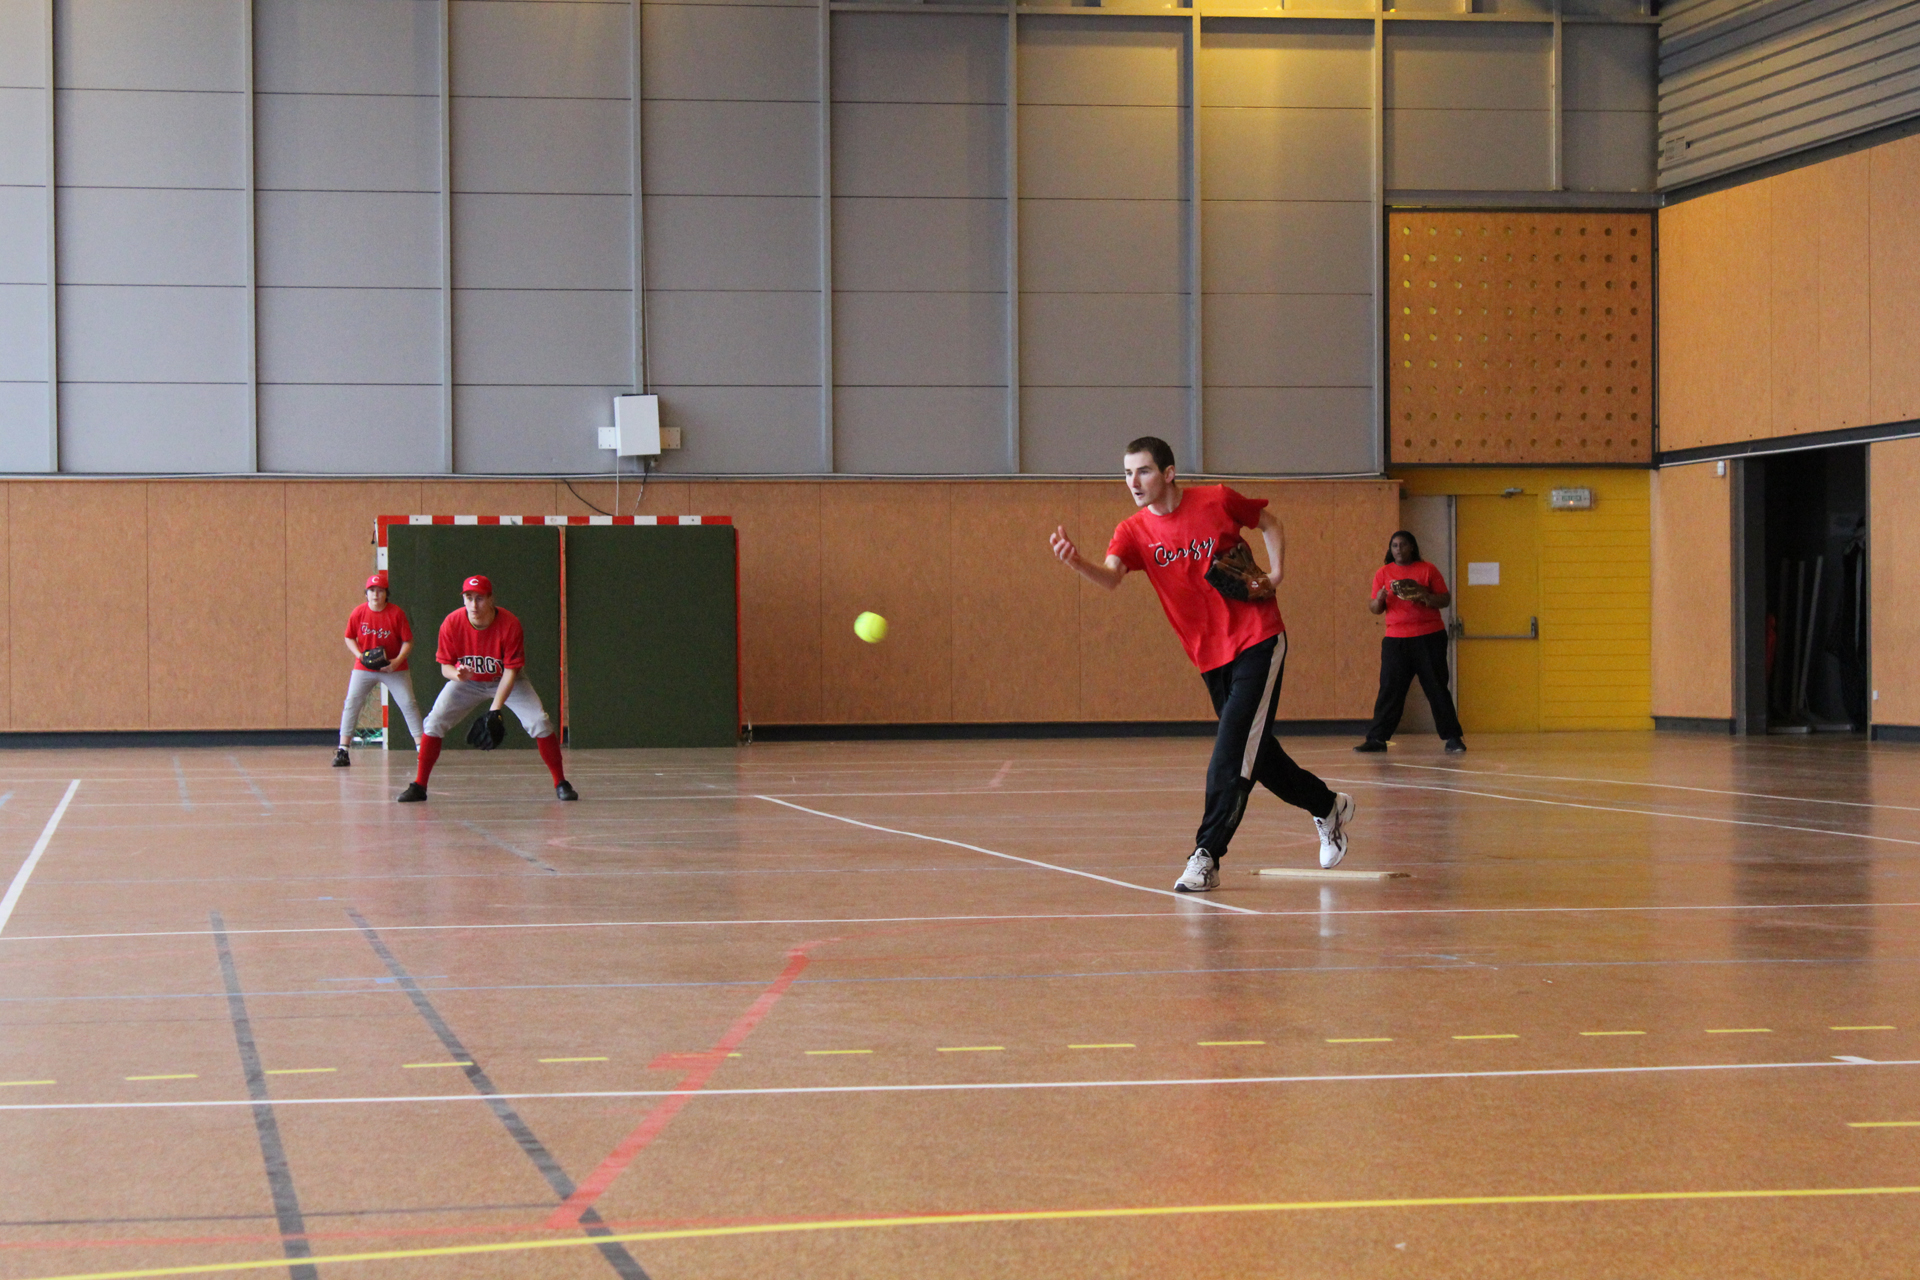 2011-02-06 Soft Mixte Indoor a Cergy (8)-resize